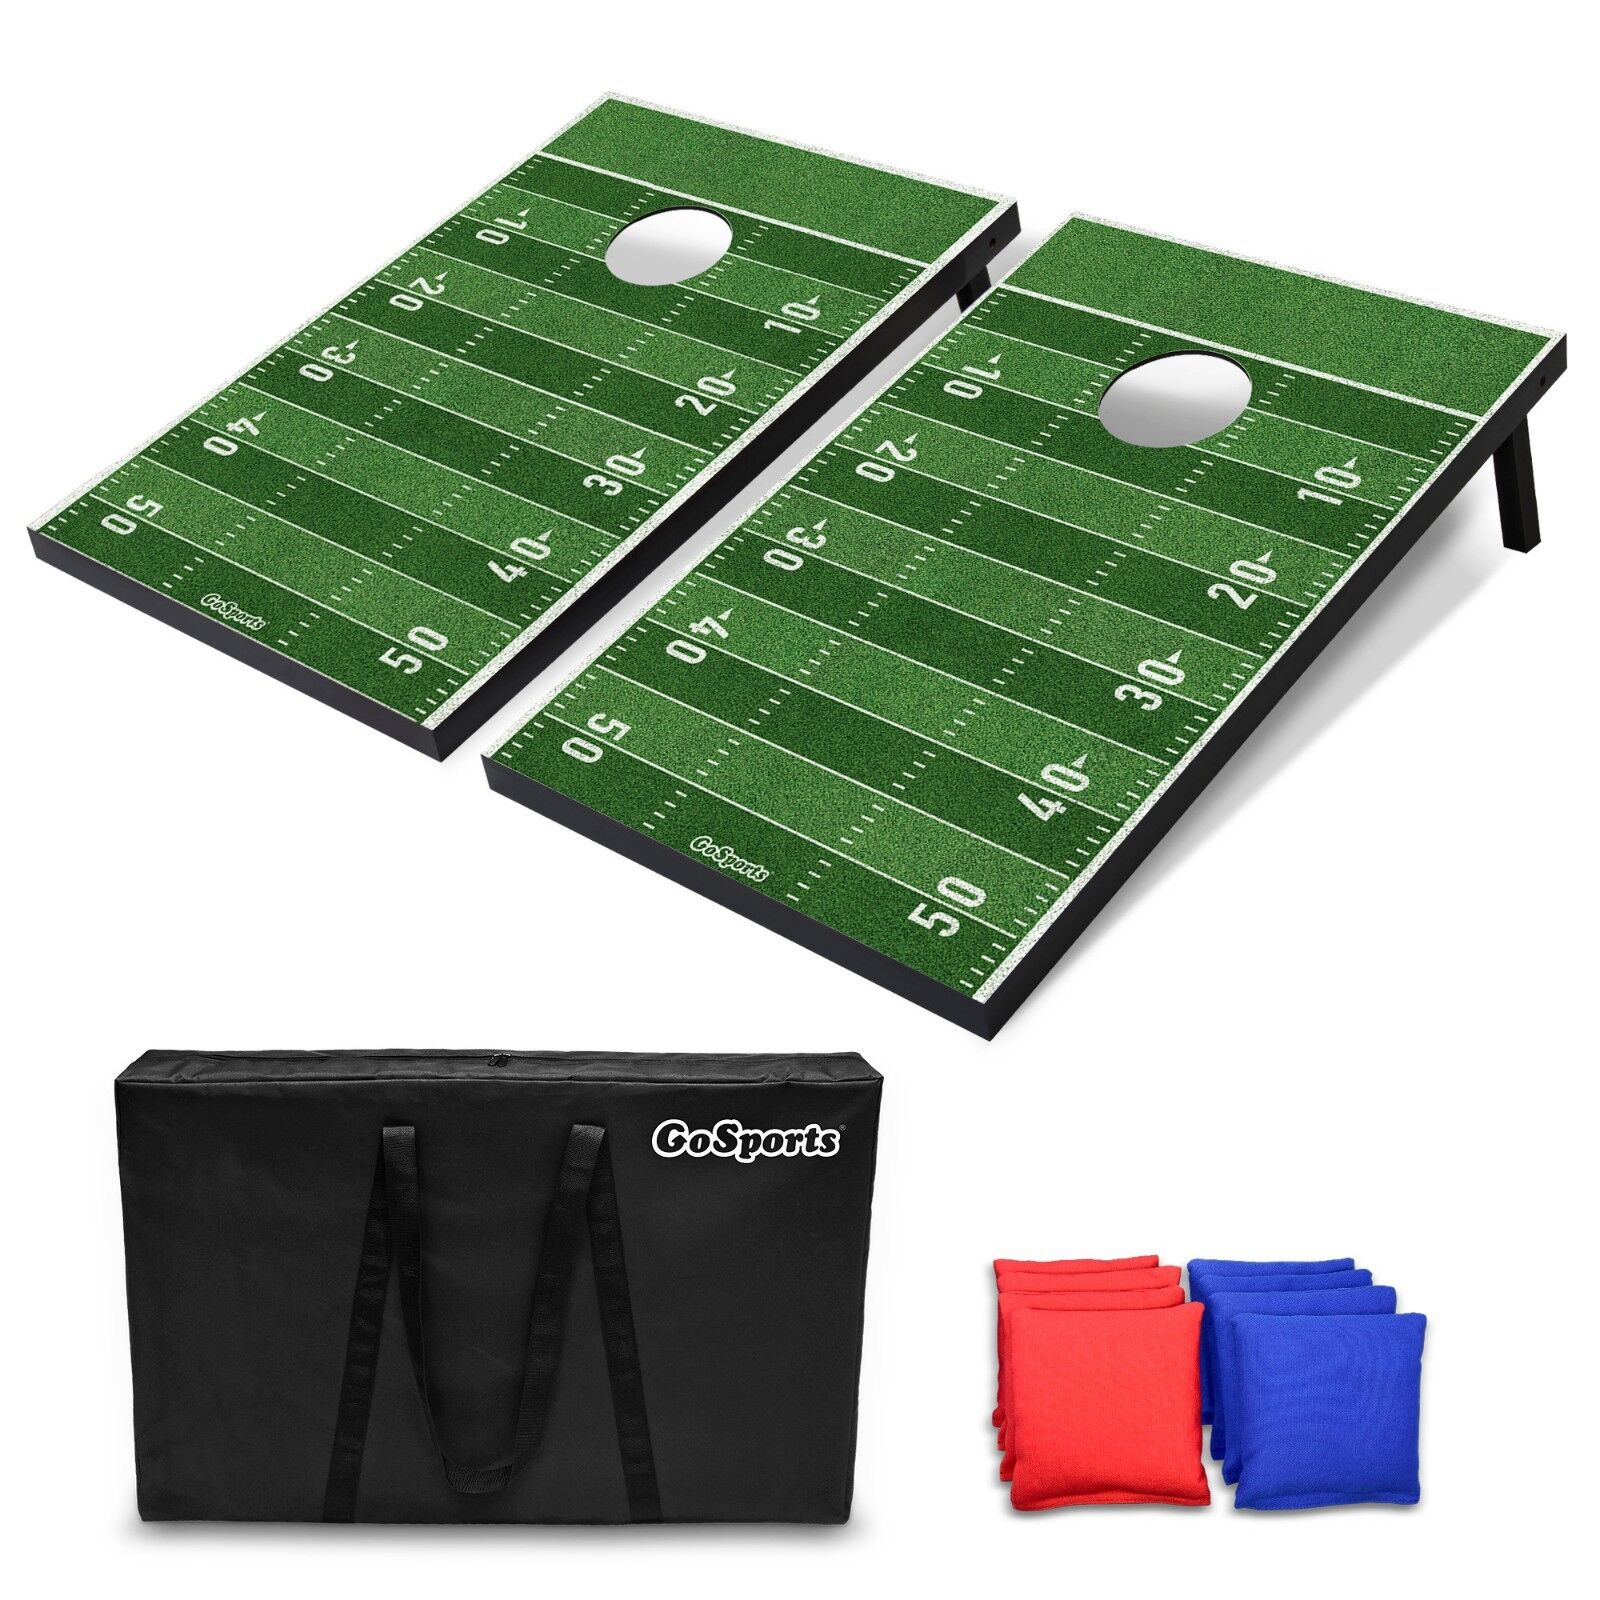 GoSports Portable Tailgate Cornhole Boards Game Set Football Edition 3'x2'